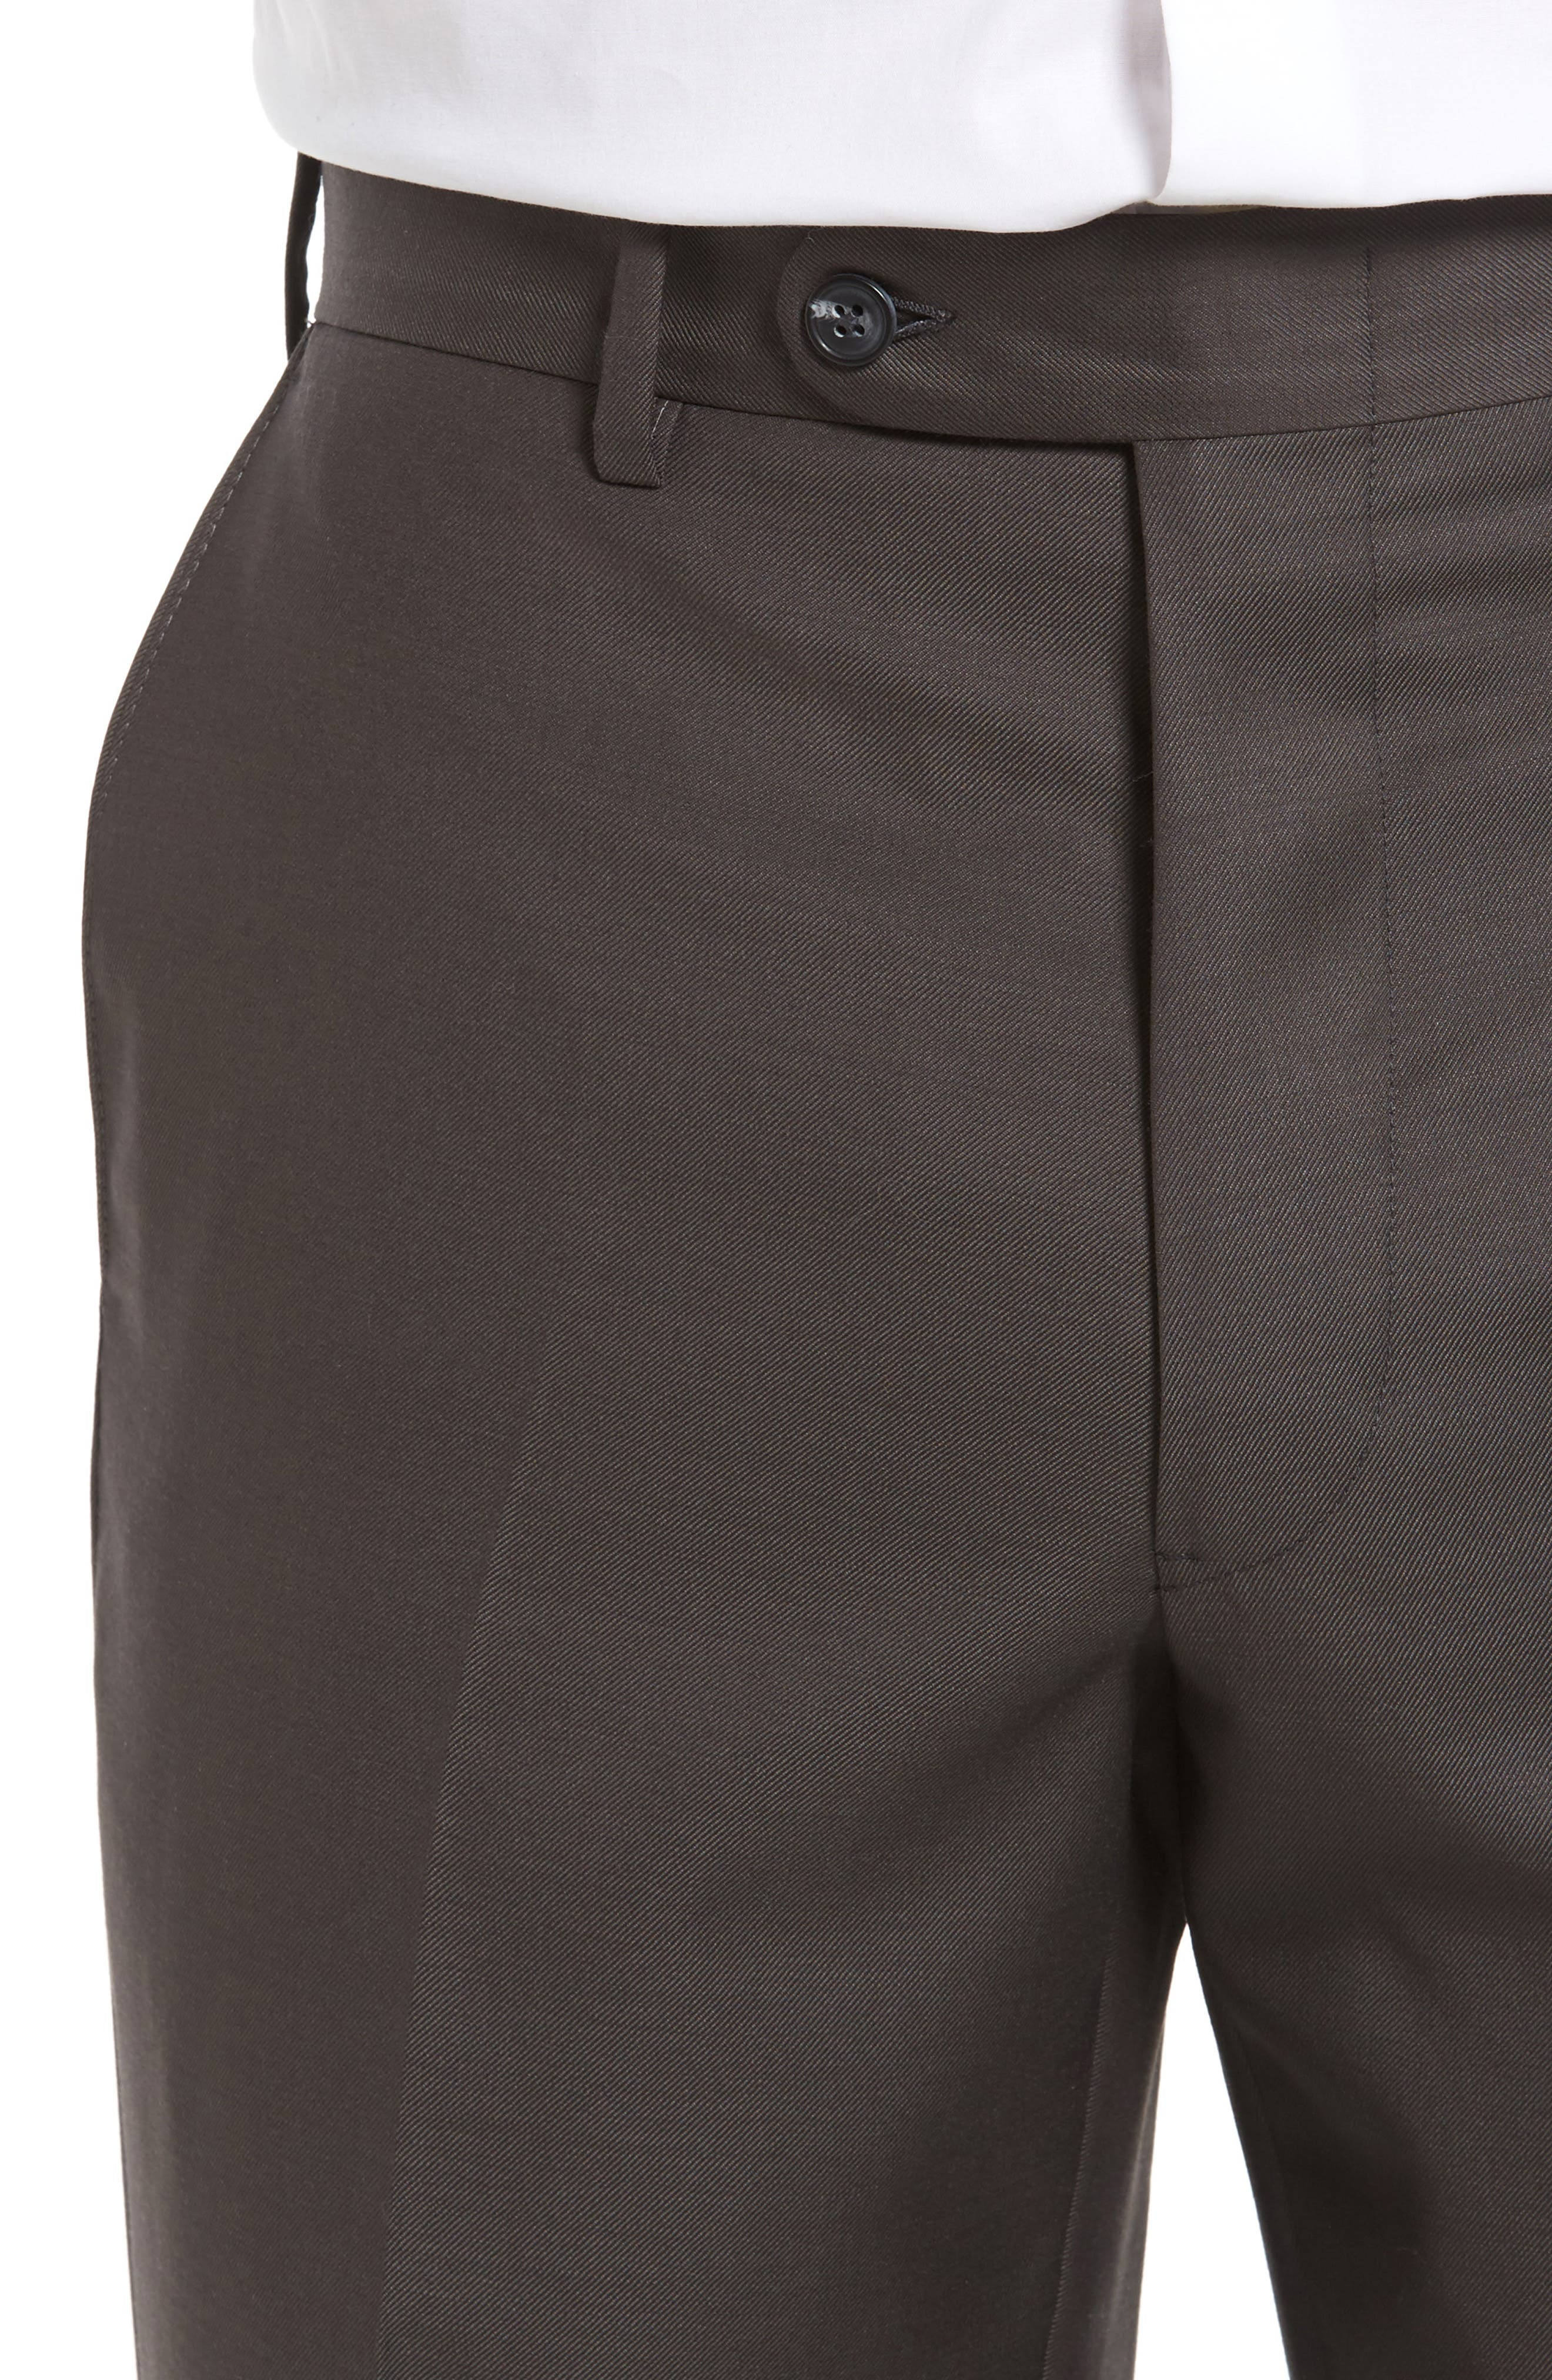 Flat Front Worsted Wool Trousers,                             Alternate thumbnail 38, color,